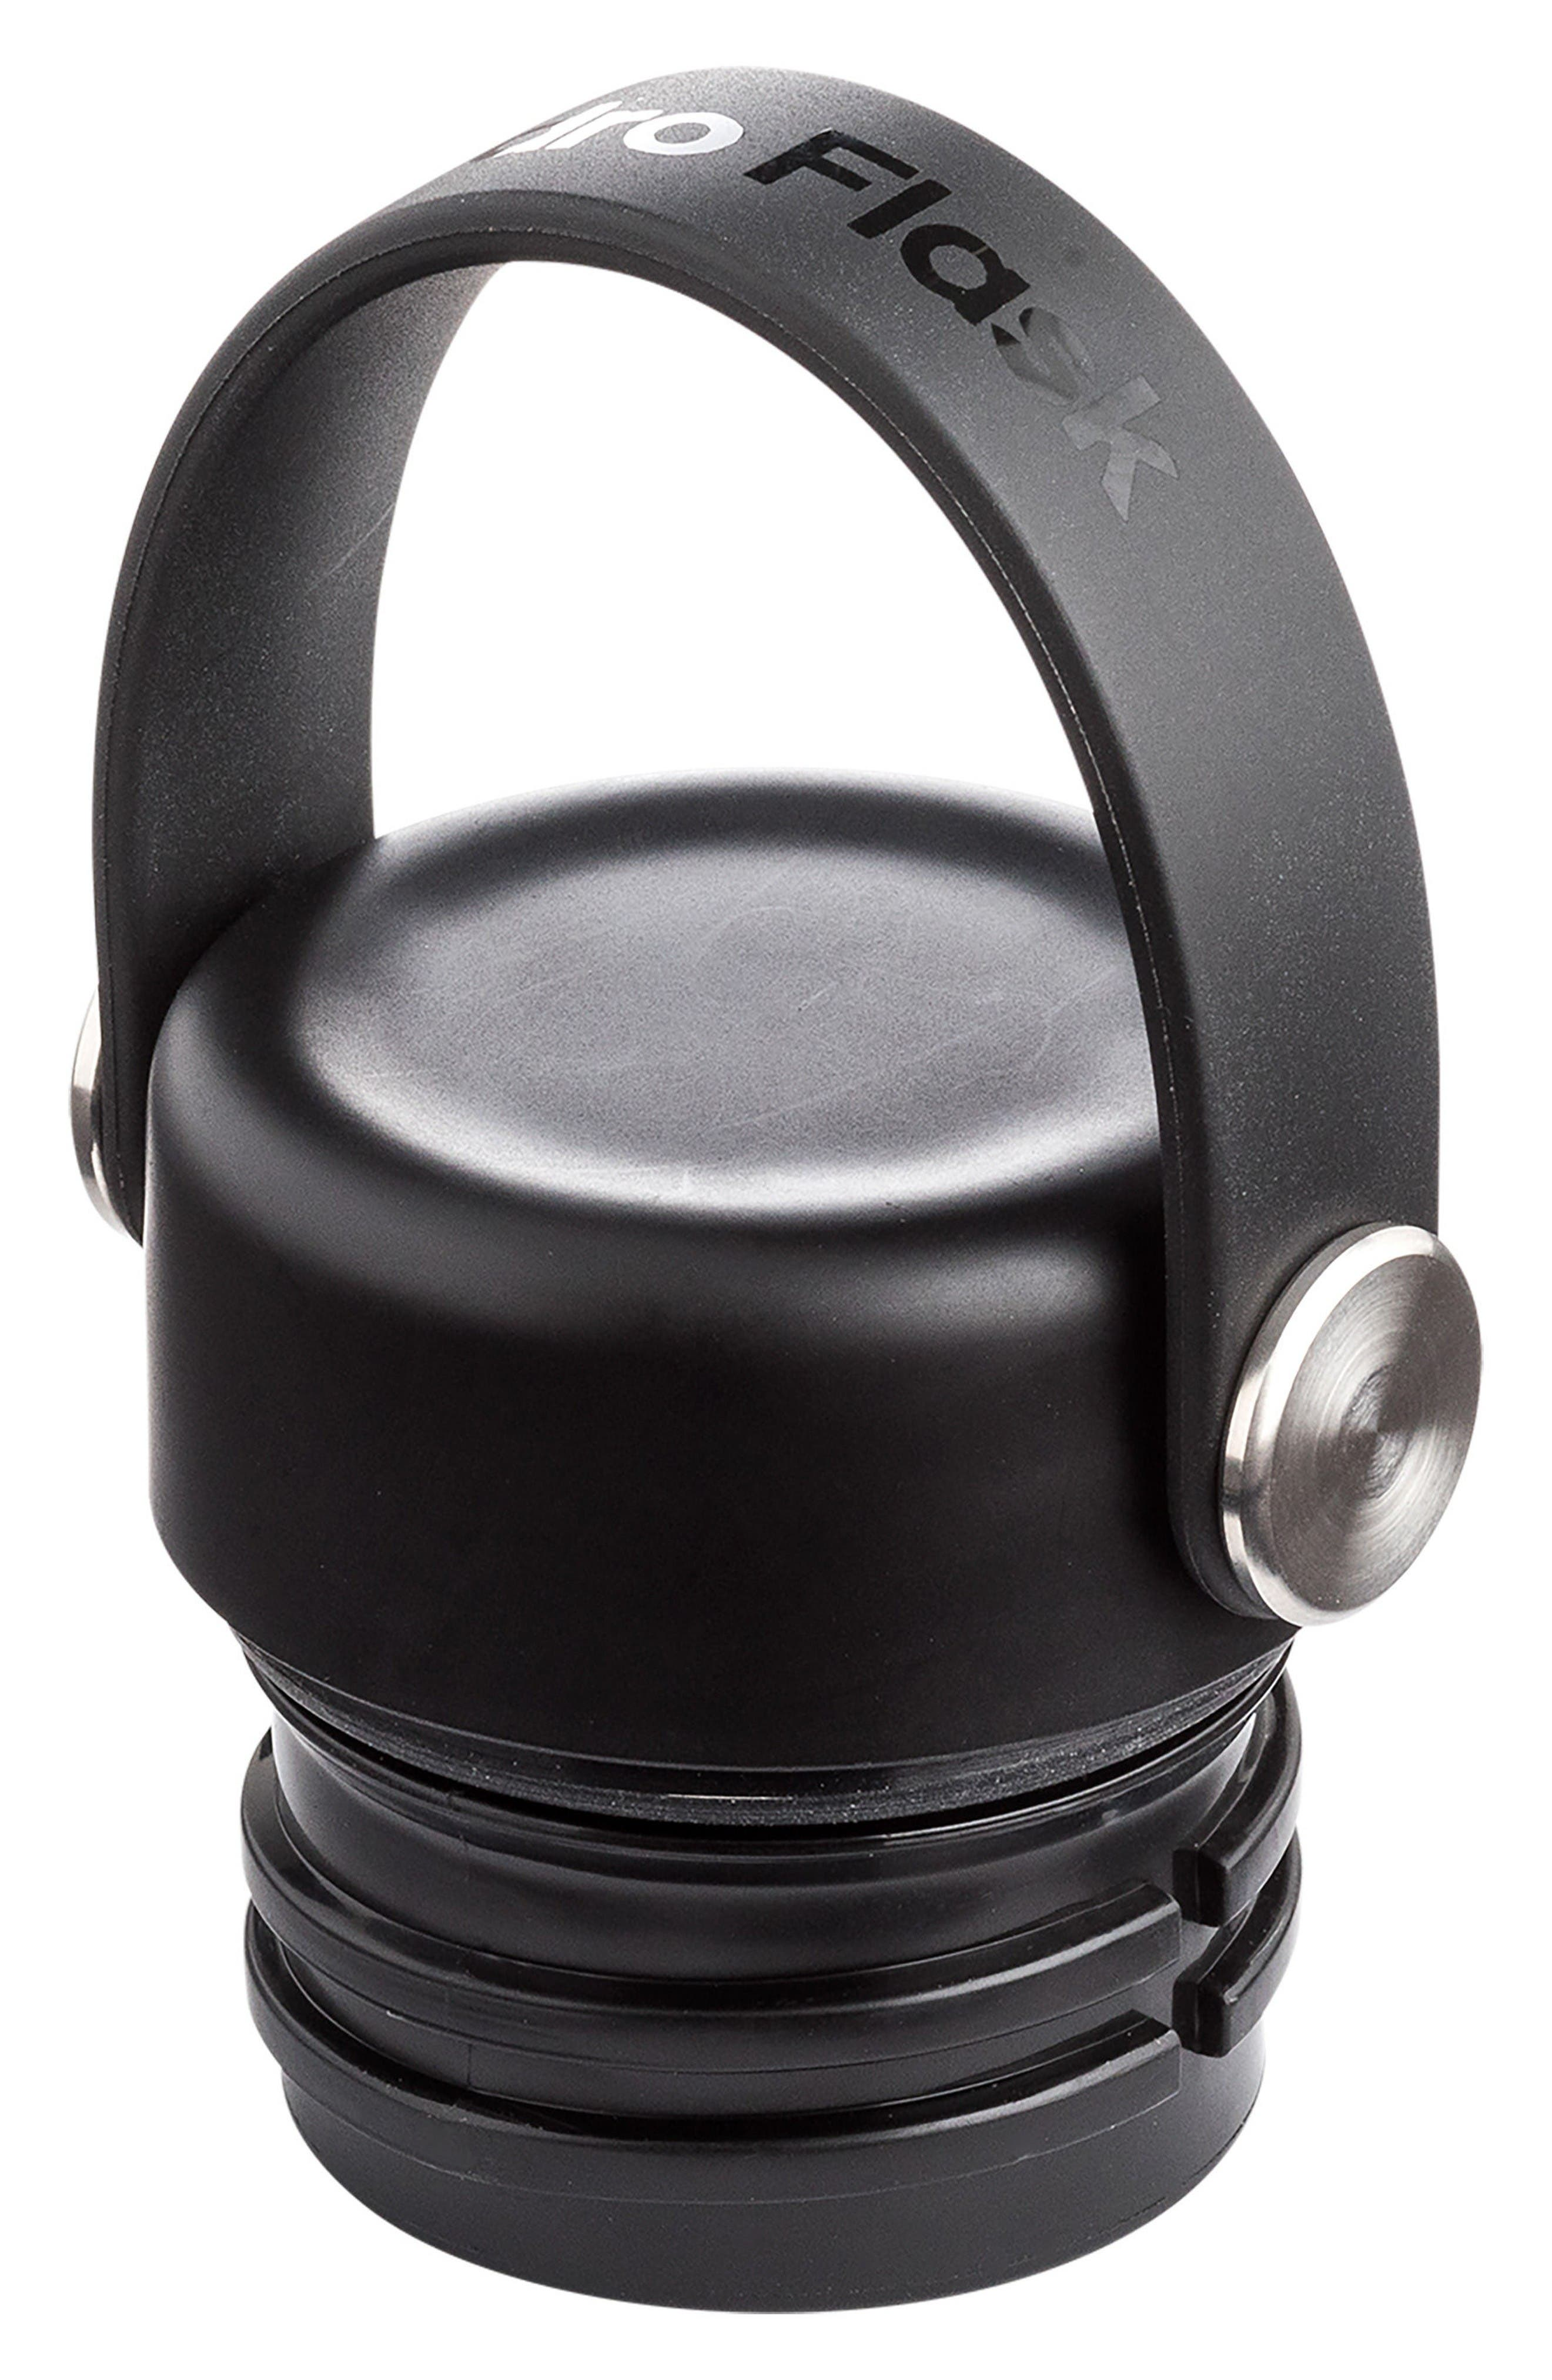 Alternate Image 1 Selected - Hydro Flask Standard Mouth Flex Cap